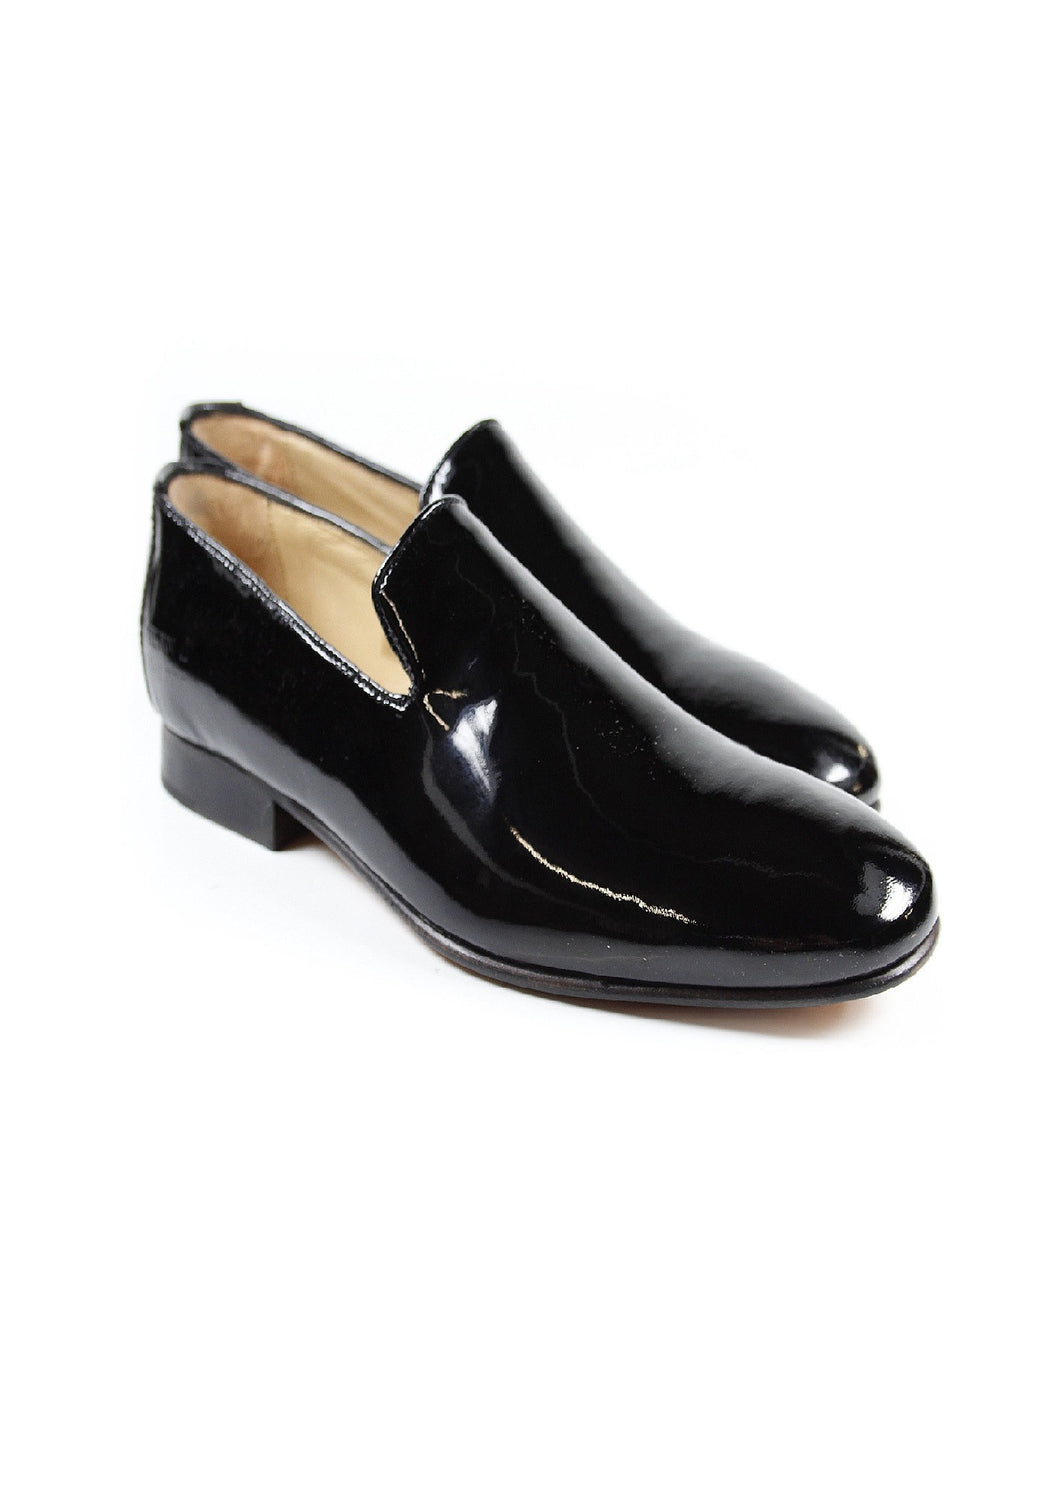 Pure patent leather shoes for men